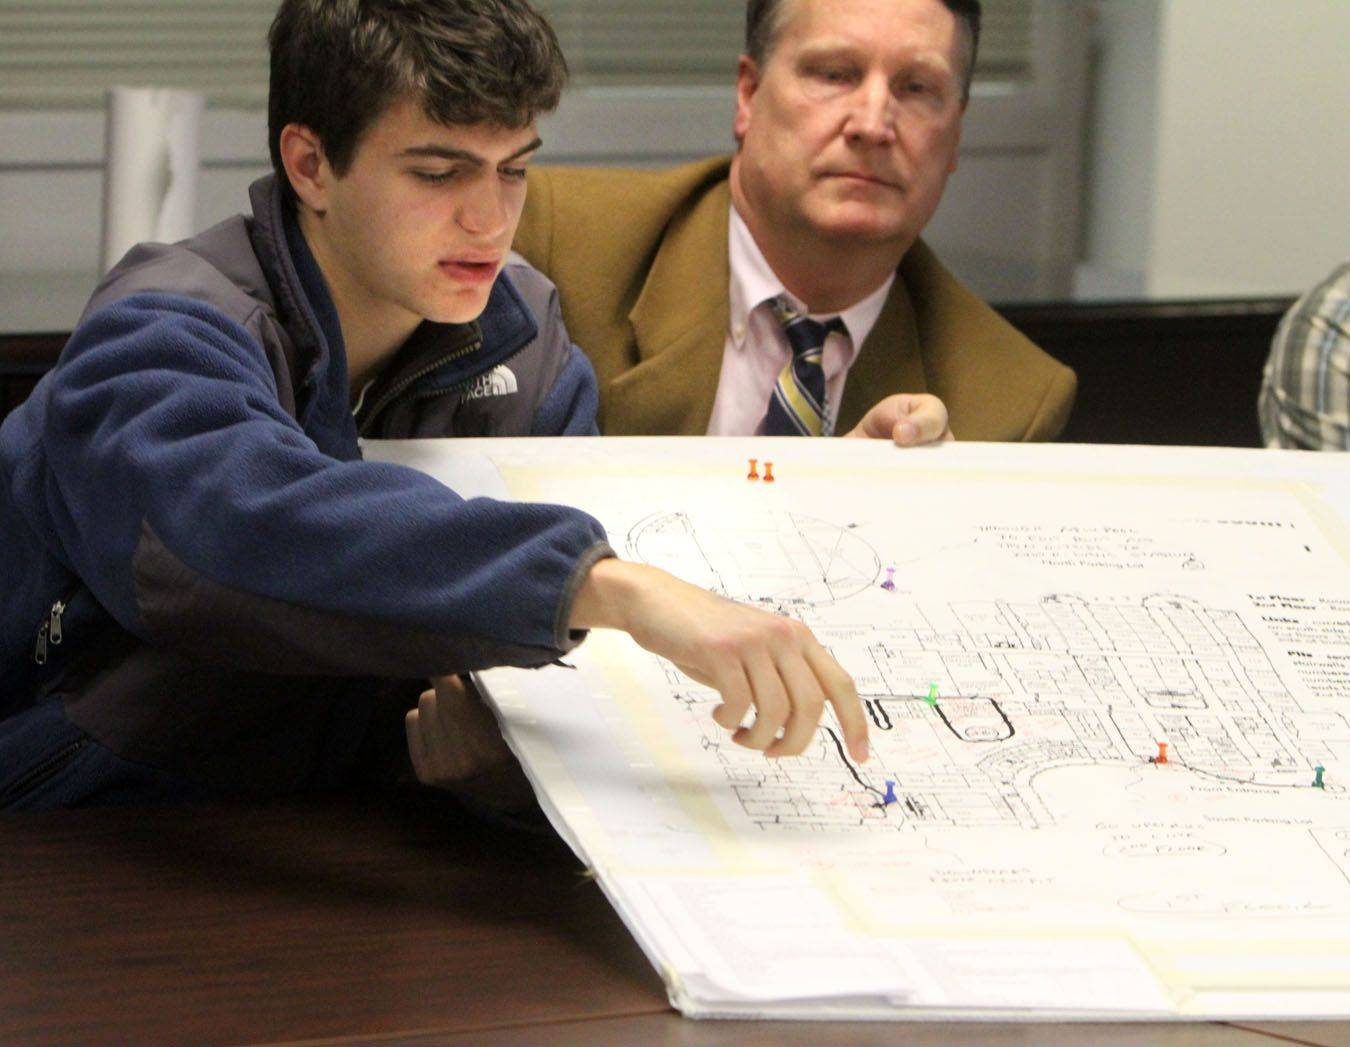 Troy Farsakian, a senior at Glenbrook South High School, shows the planning board used to produced the school's 50th-anniversary video.